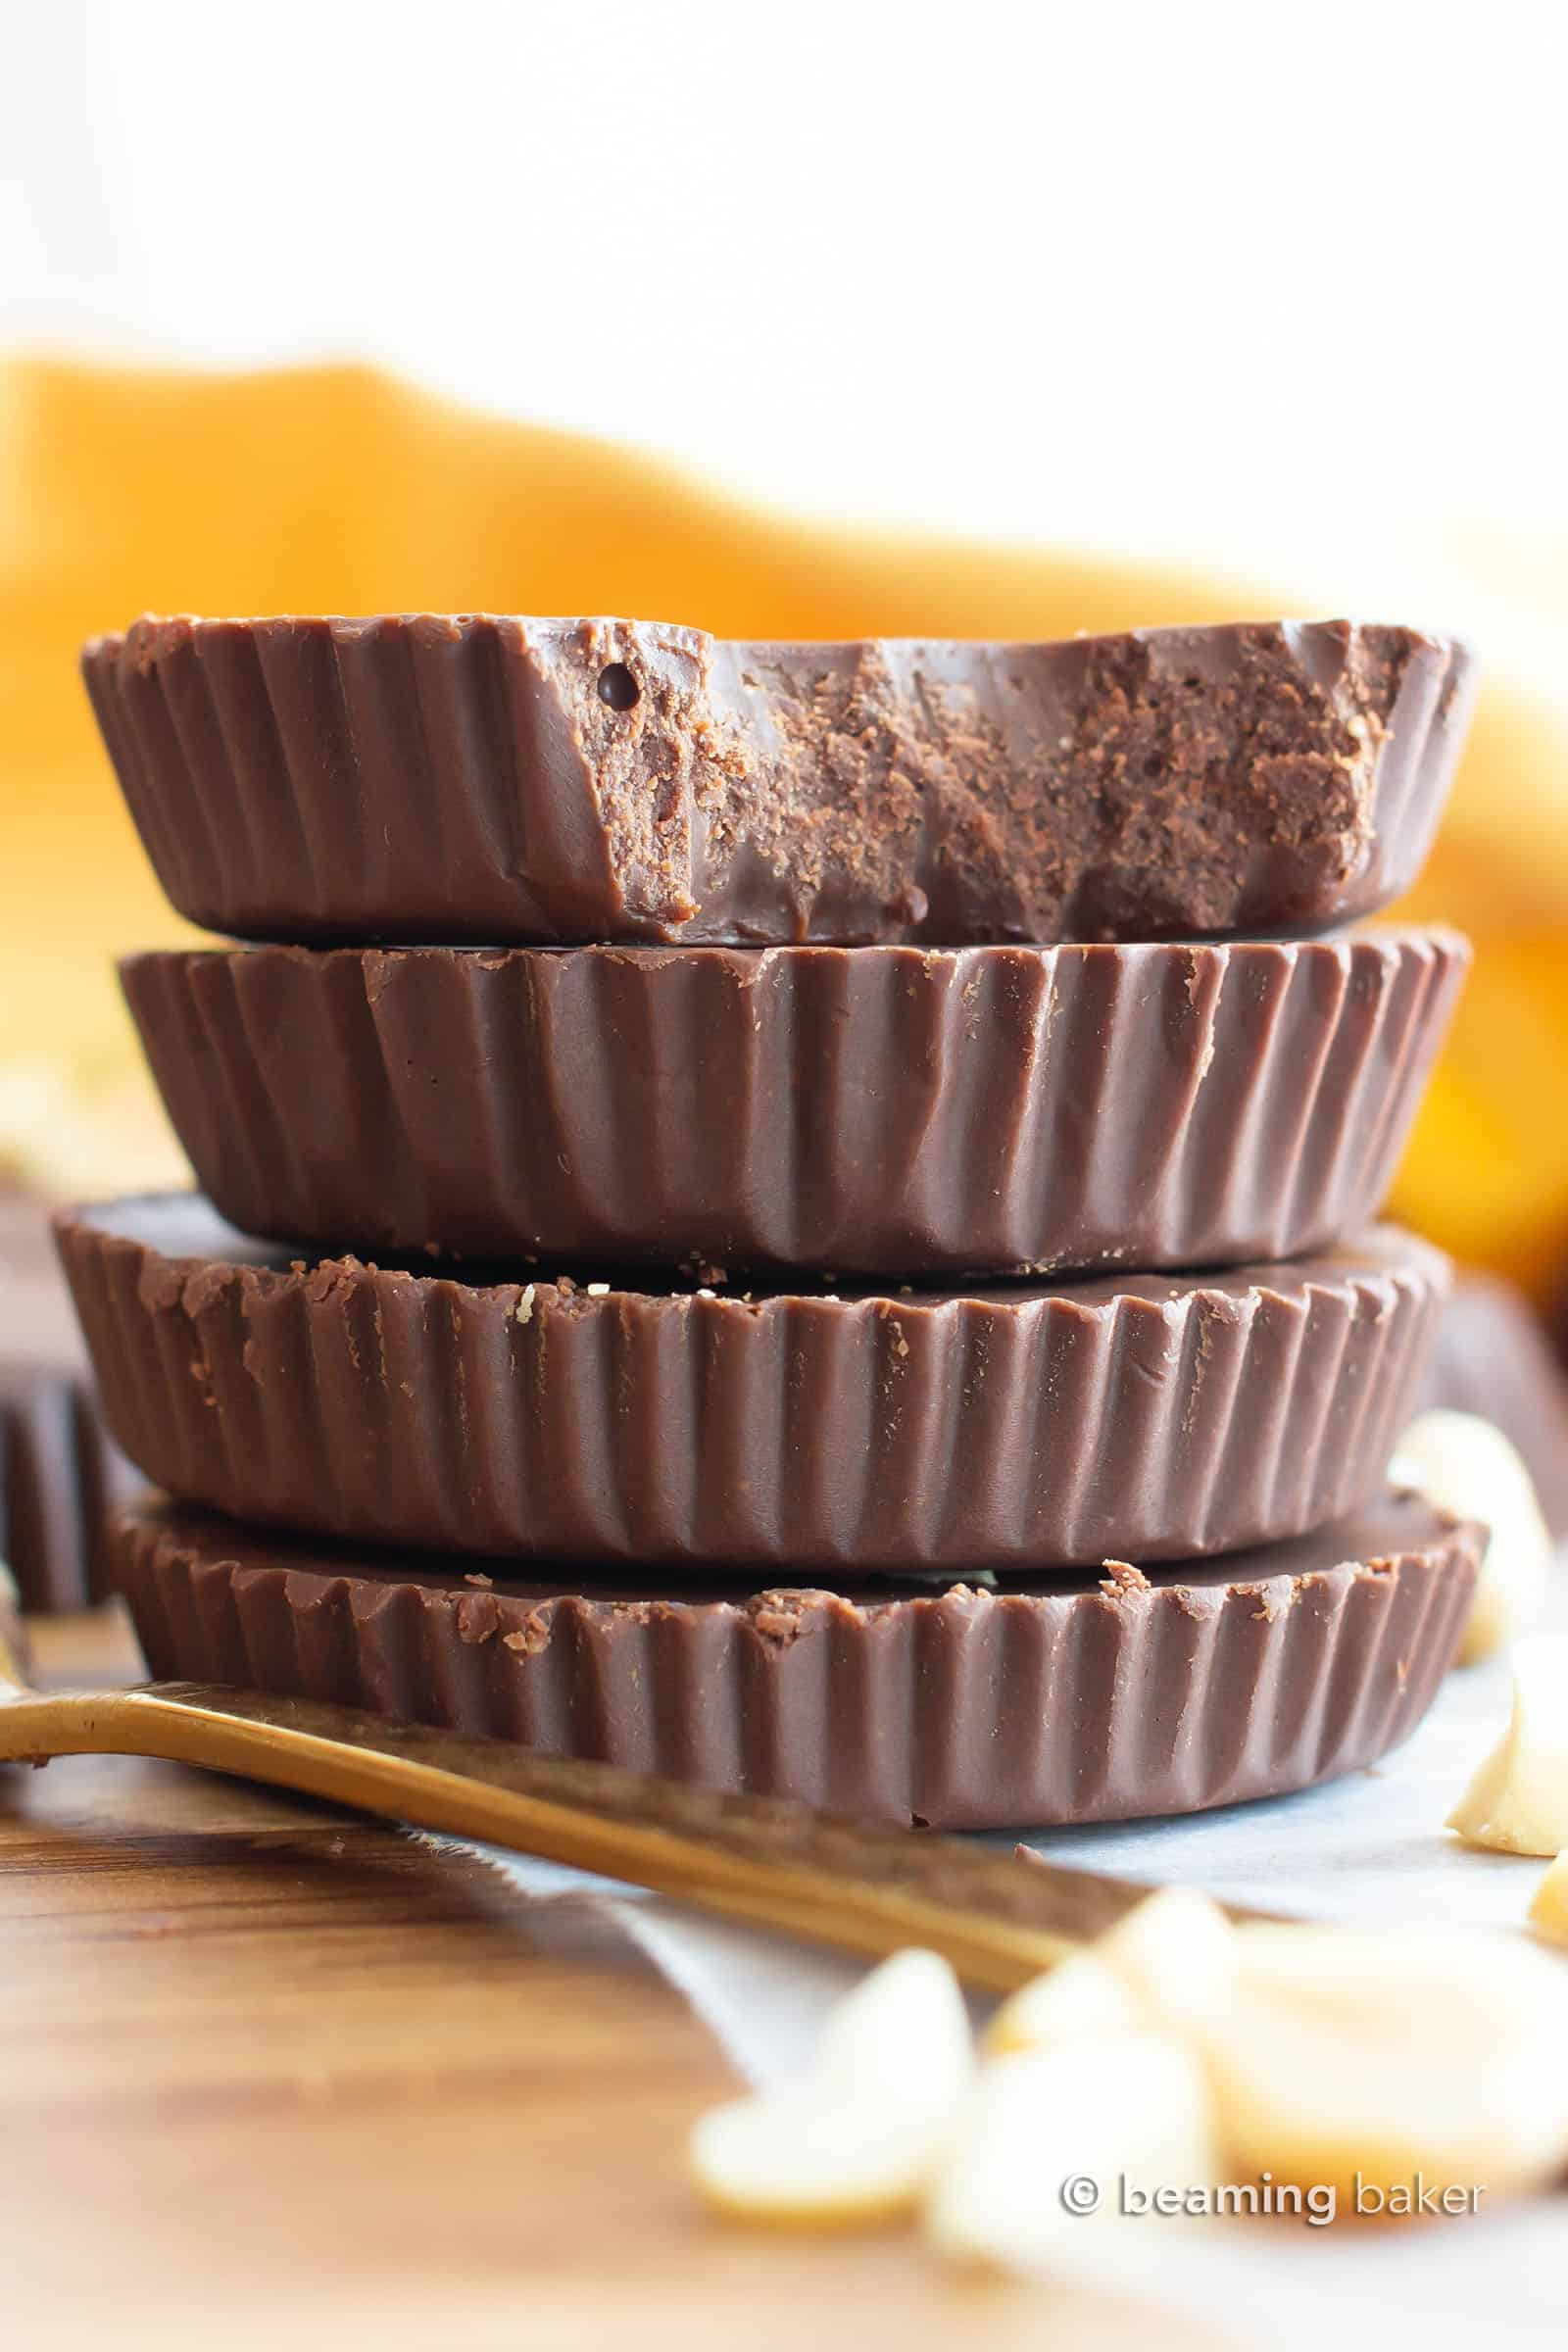 Keto Chocolate Peanut Butter Fudge Cups: this 5 Minute chocolate peanut butter fudge recipe is so easy! Just 2 ingredients for yummy cups of creamy, rich Low Carb fudge! #Keto #LowCarb #Vegan #Fudge #PeanutButter | Recipe at BeamingBaker.com